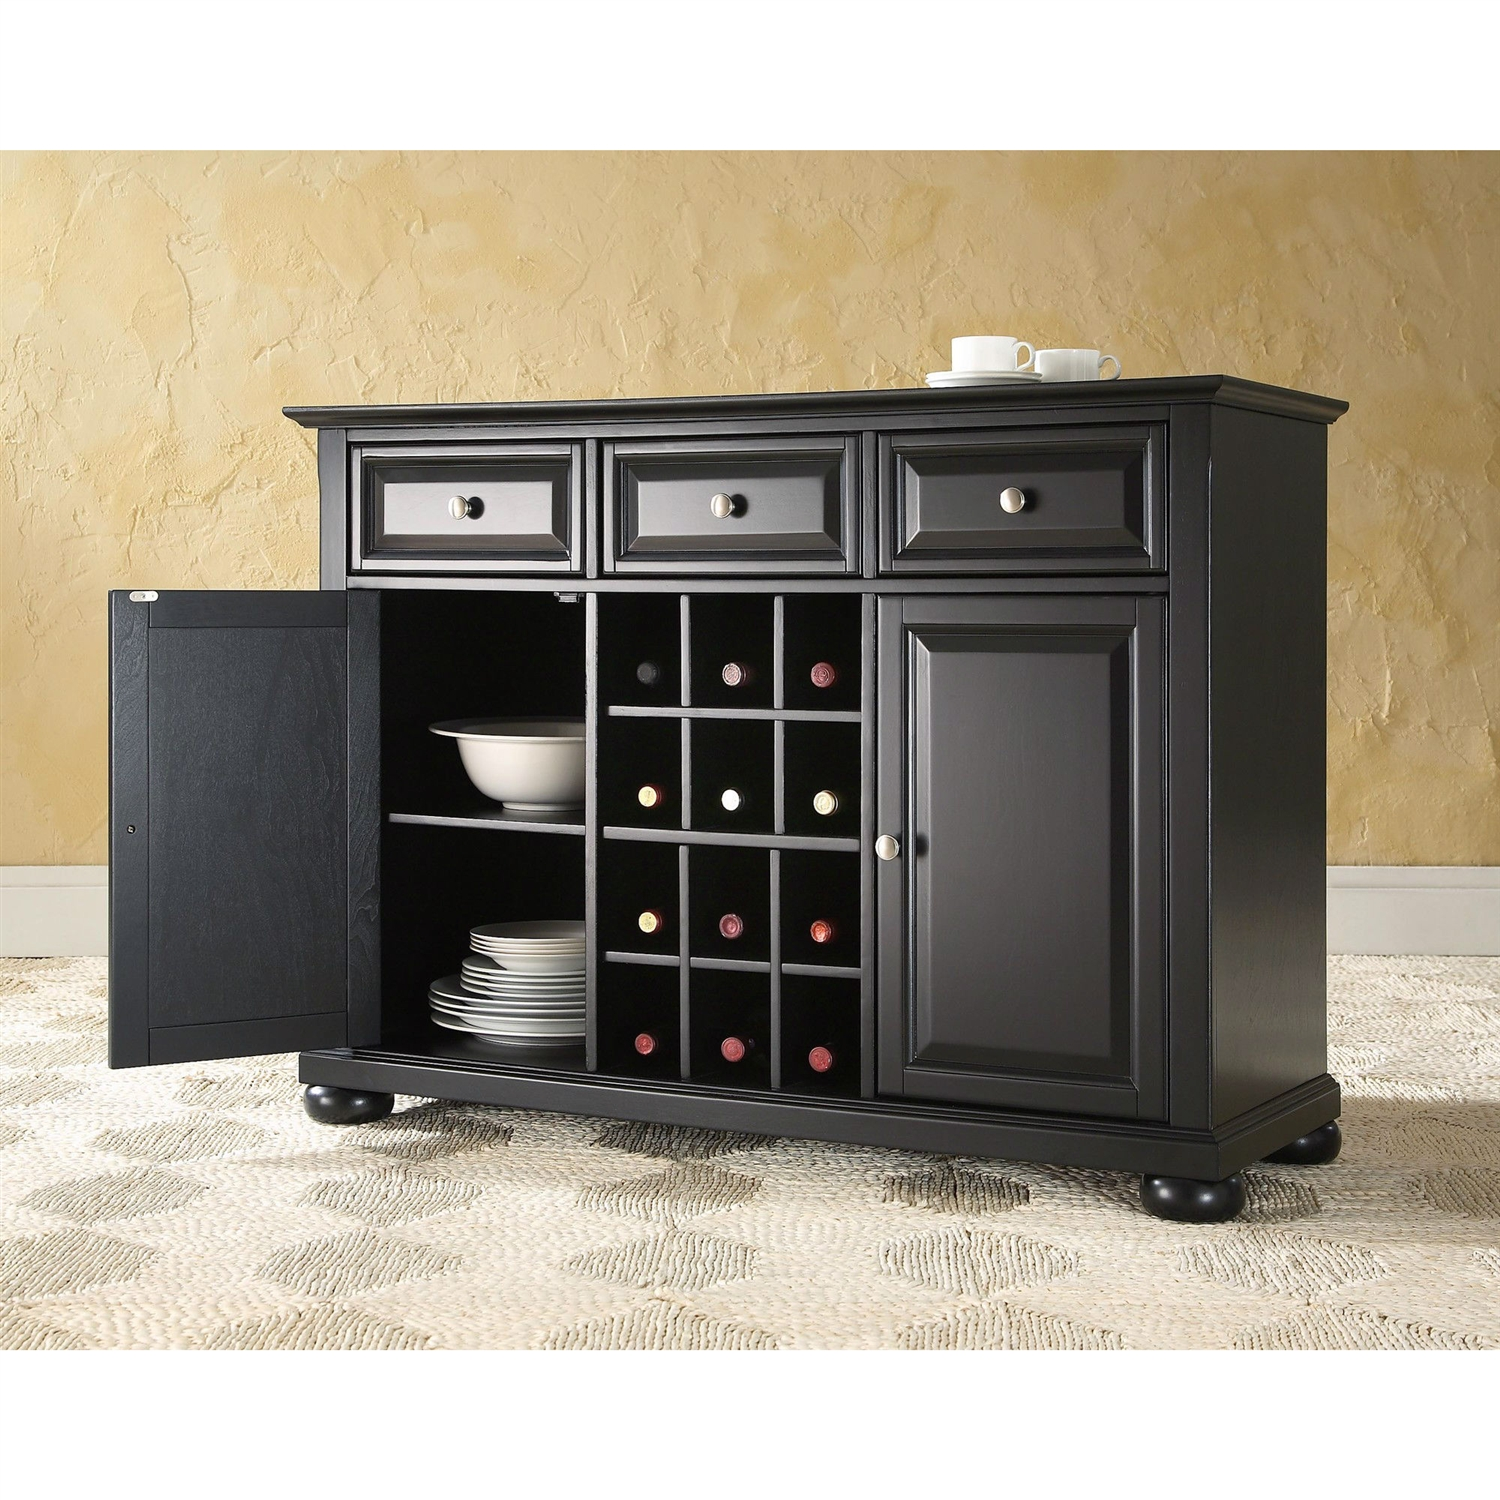 hands vcca width drawers trim four door cabinet products item b storage threshold cornwall height wine with